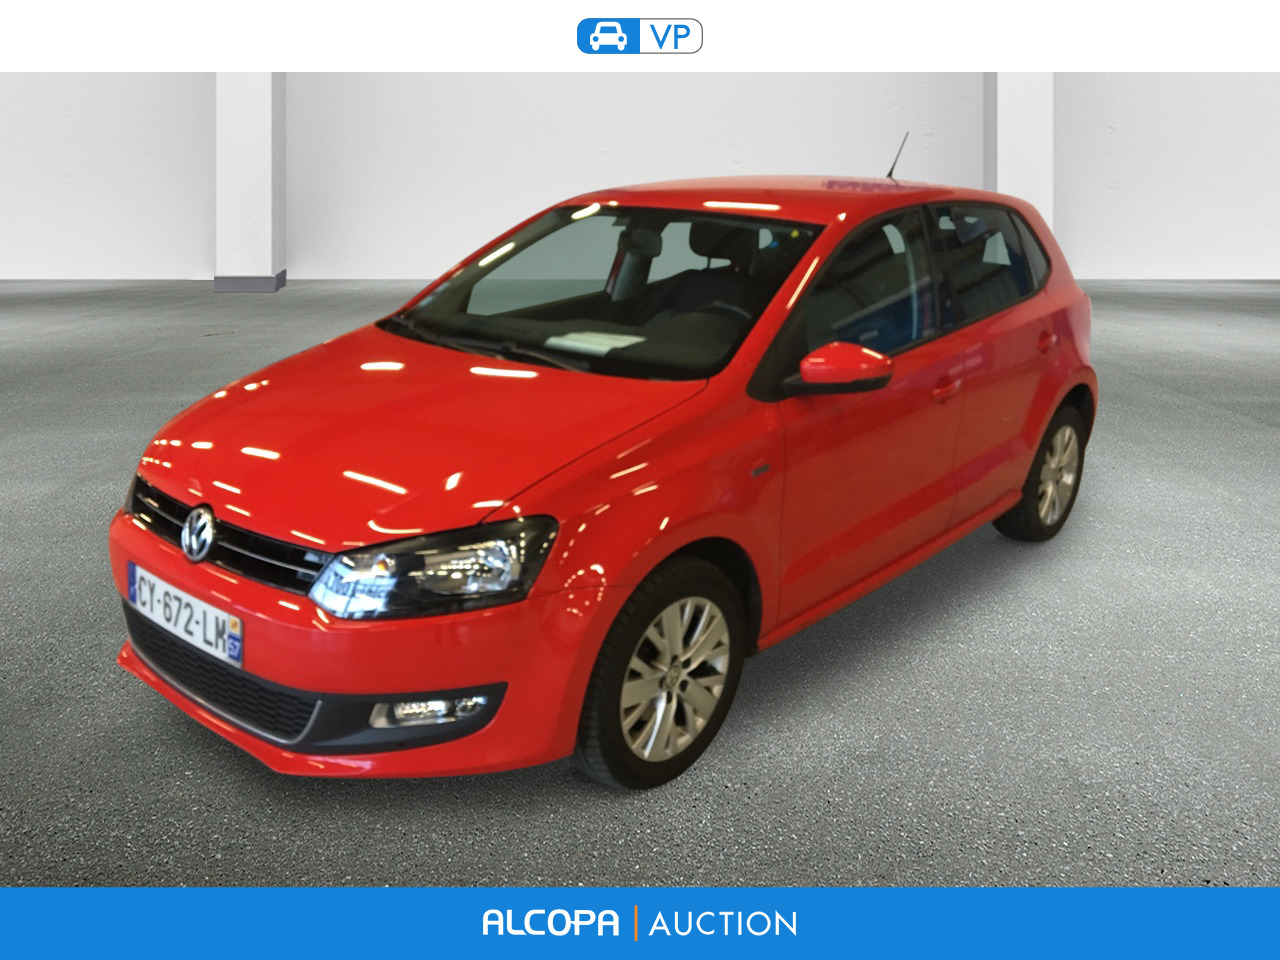 volkswagen polo polo 1 2 60ch life 5p rennes alcopa auction. Black Bedroom Furniture Sets. Home Design Ideas